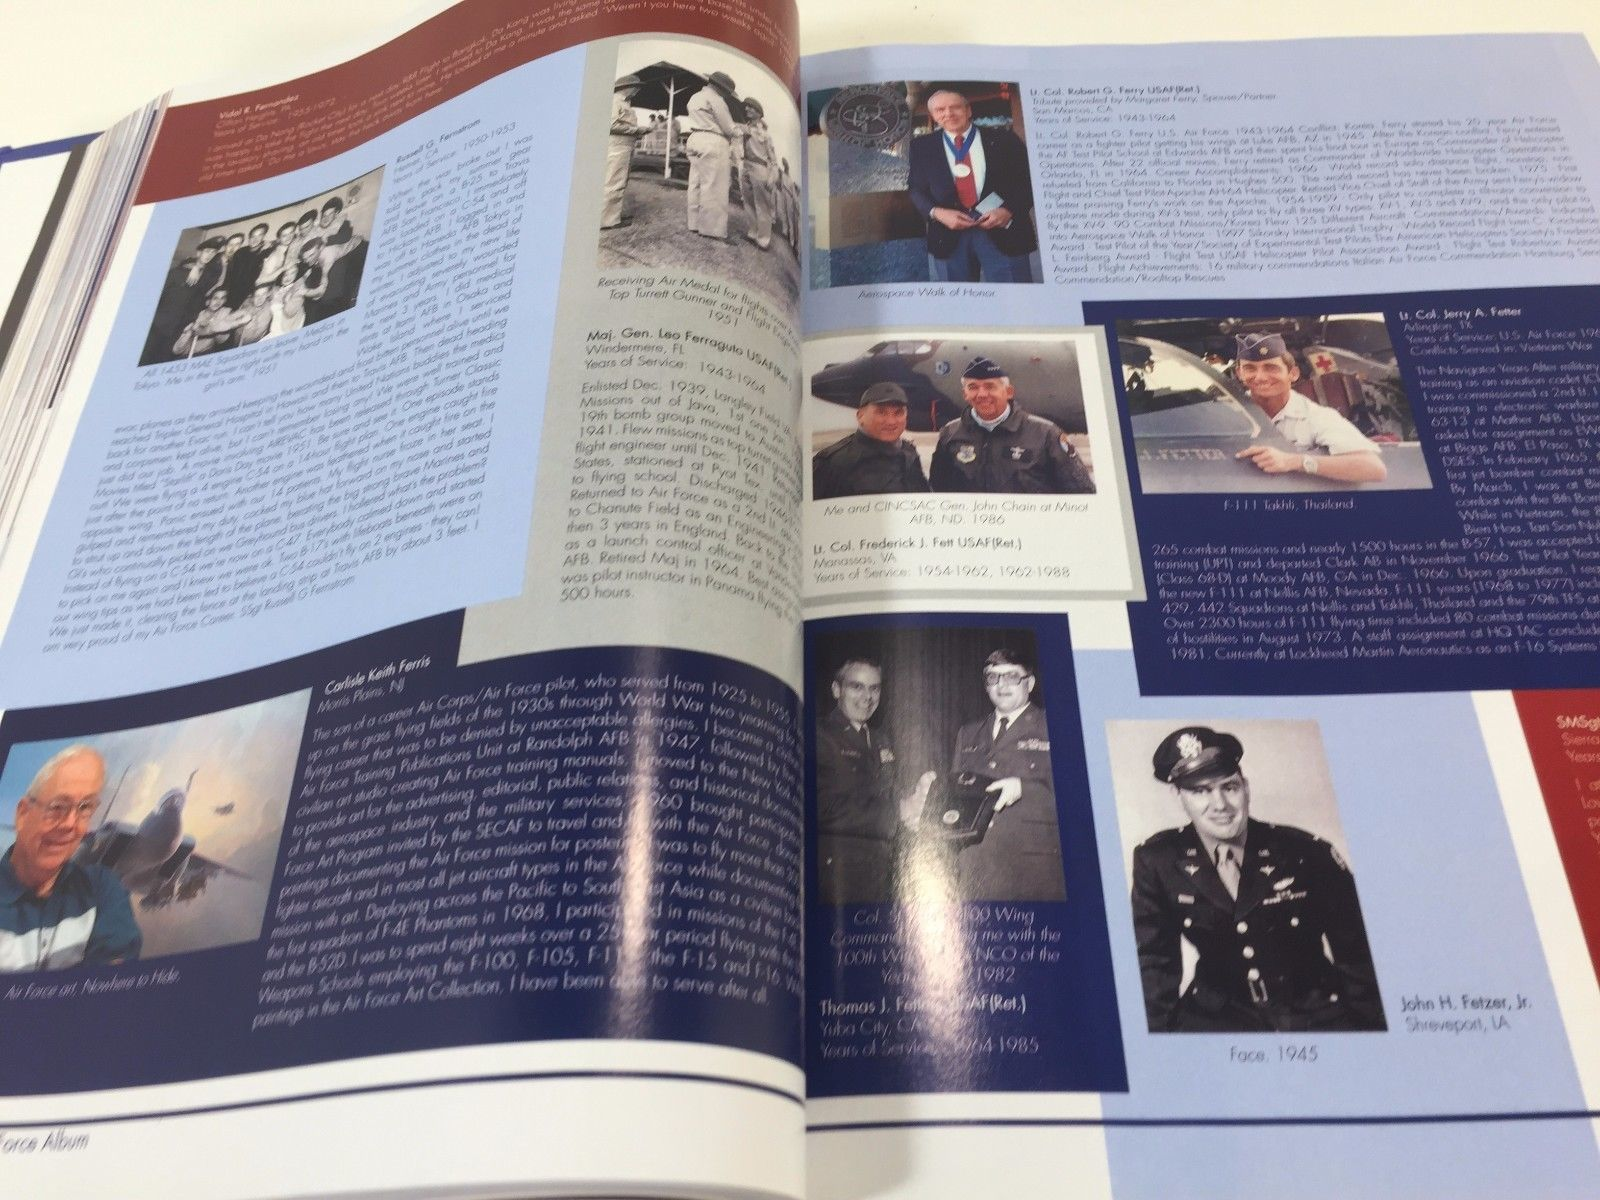 The Air Force Album: Who We Served - Hardcover 2009 Illustrated